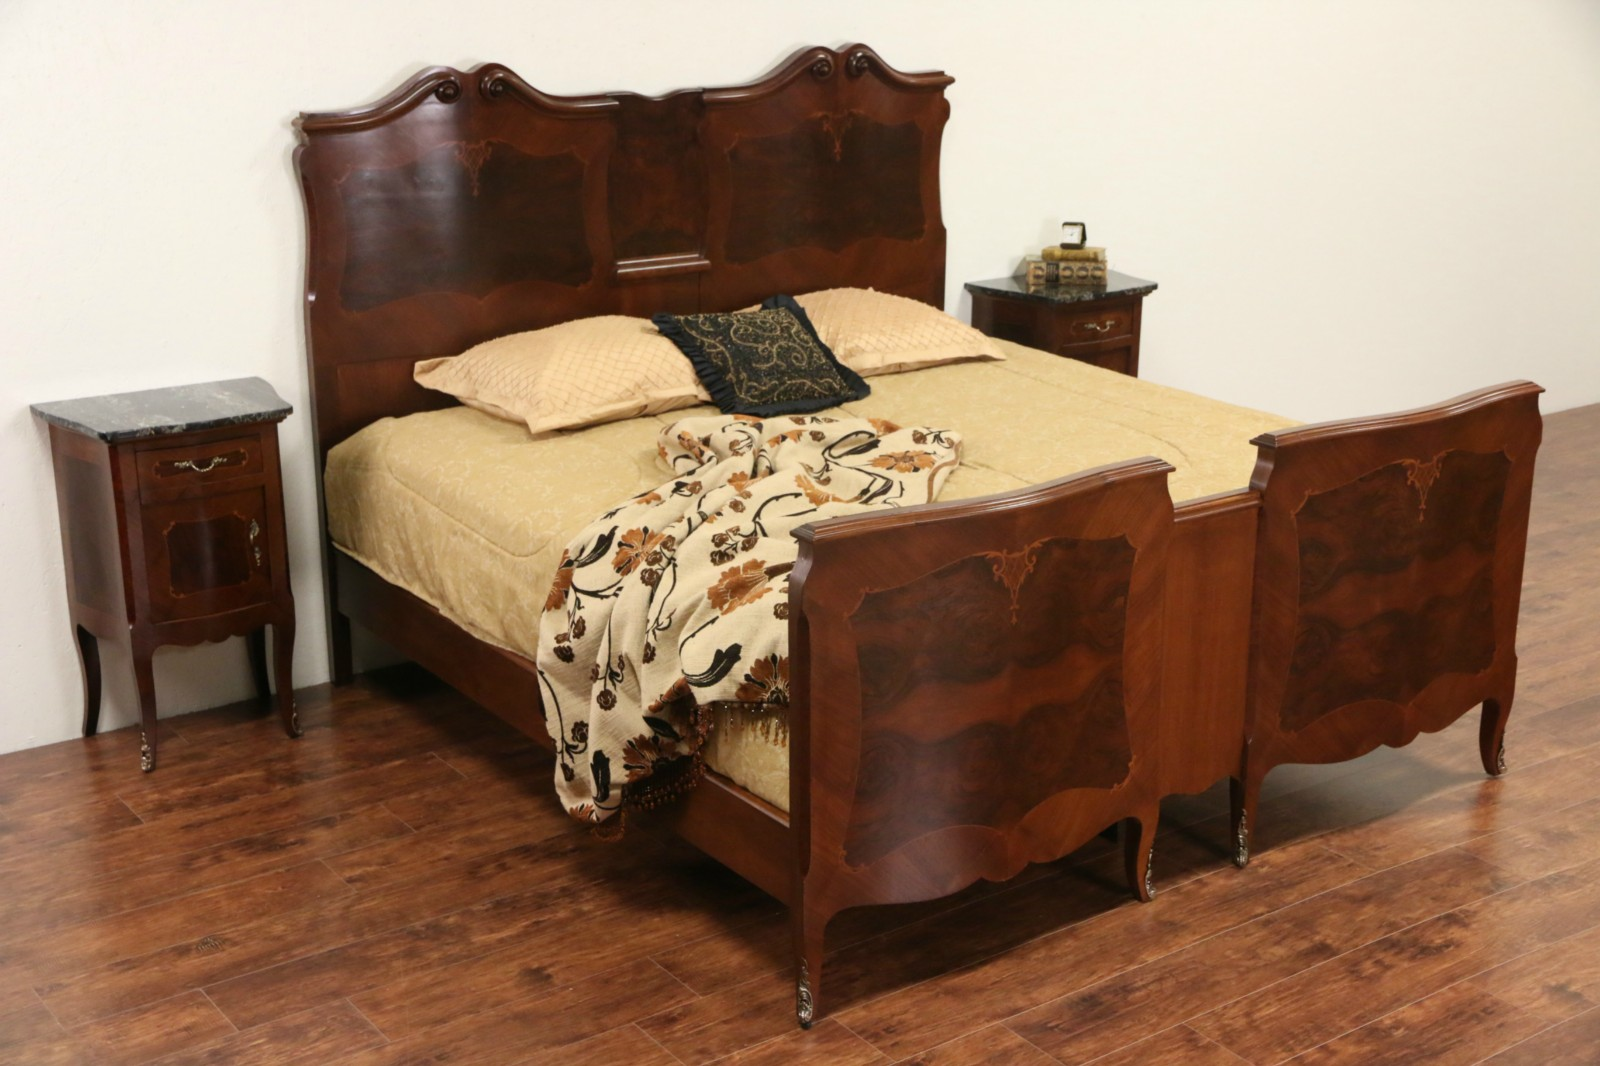 Italian Rosewood Marquetry Bombe 1900 Antique King Size Bed. SOLD   Italian Rosewood Marquetry Bombe 1900 Antique King Size Bed